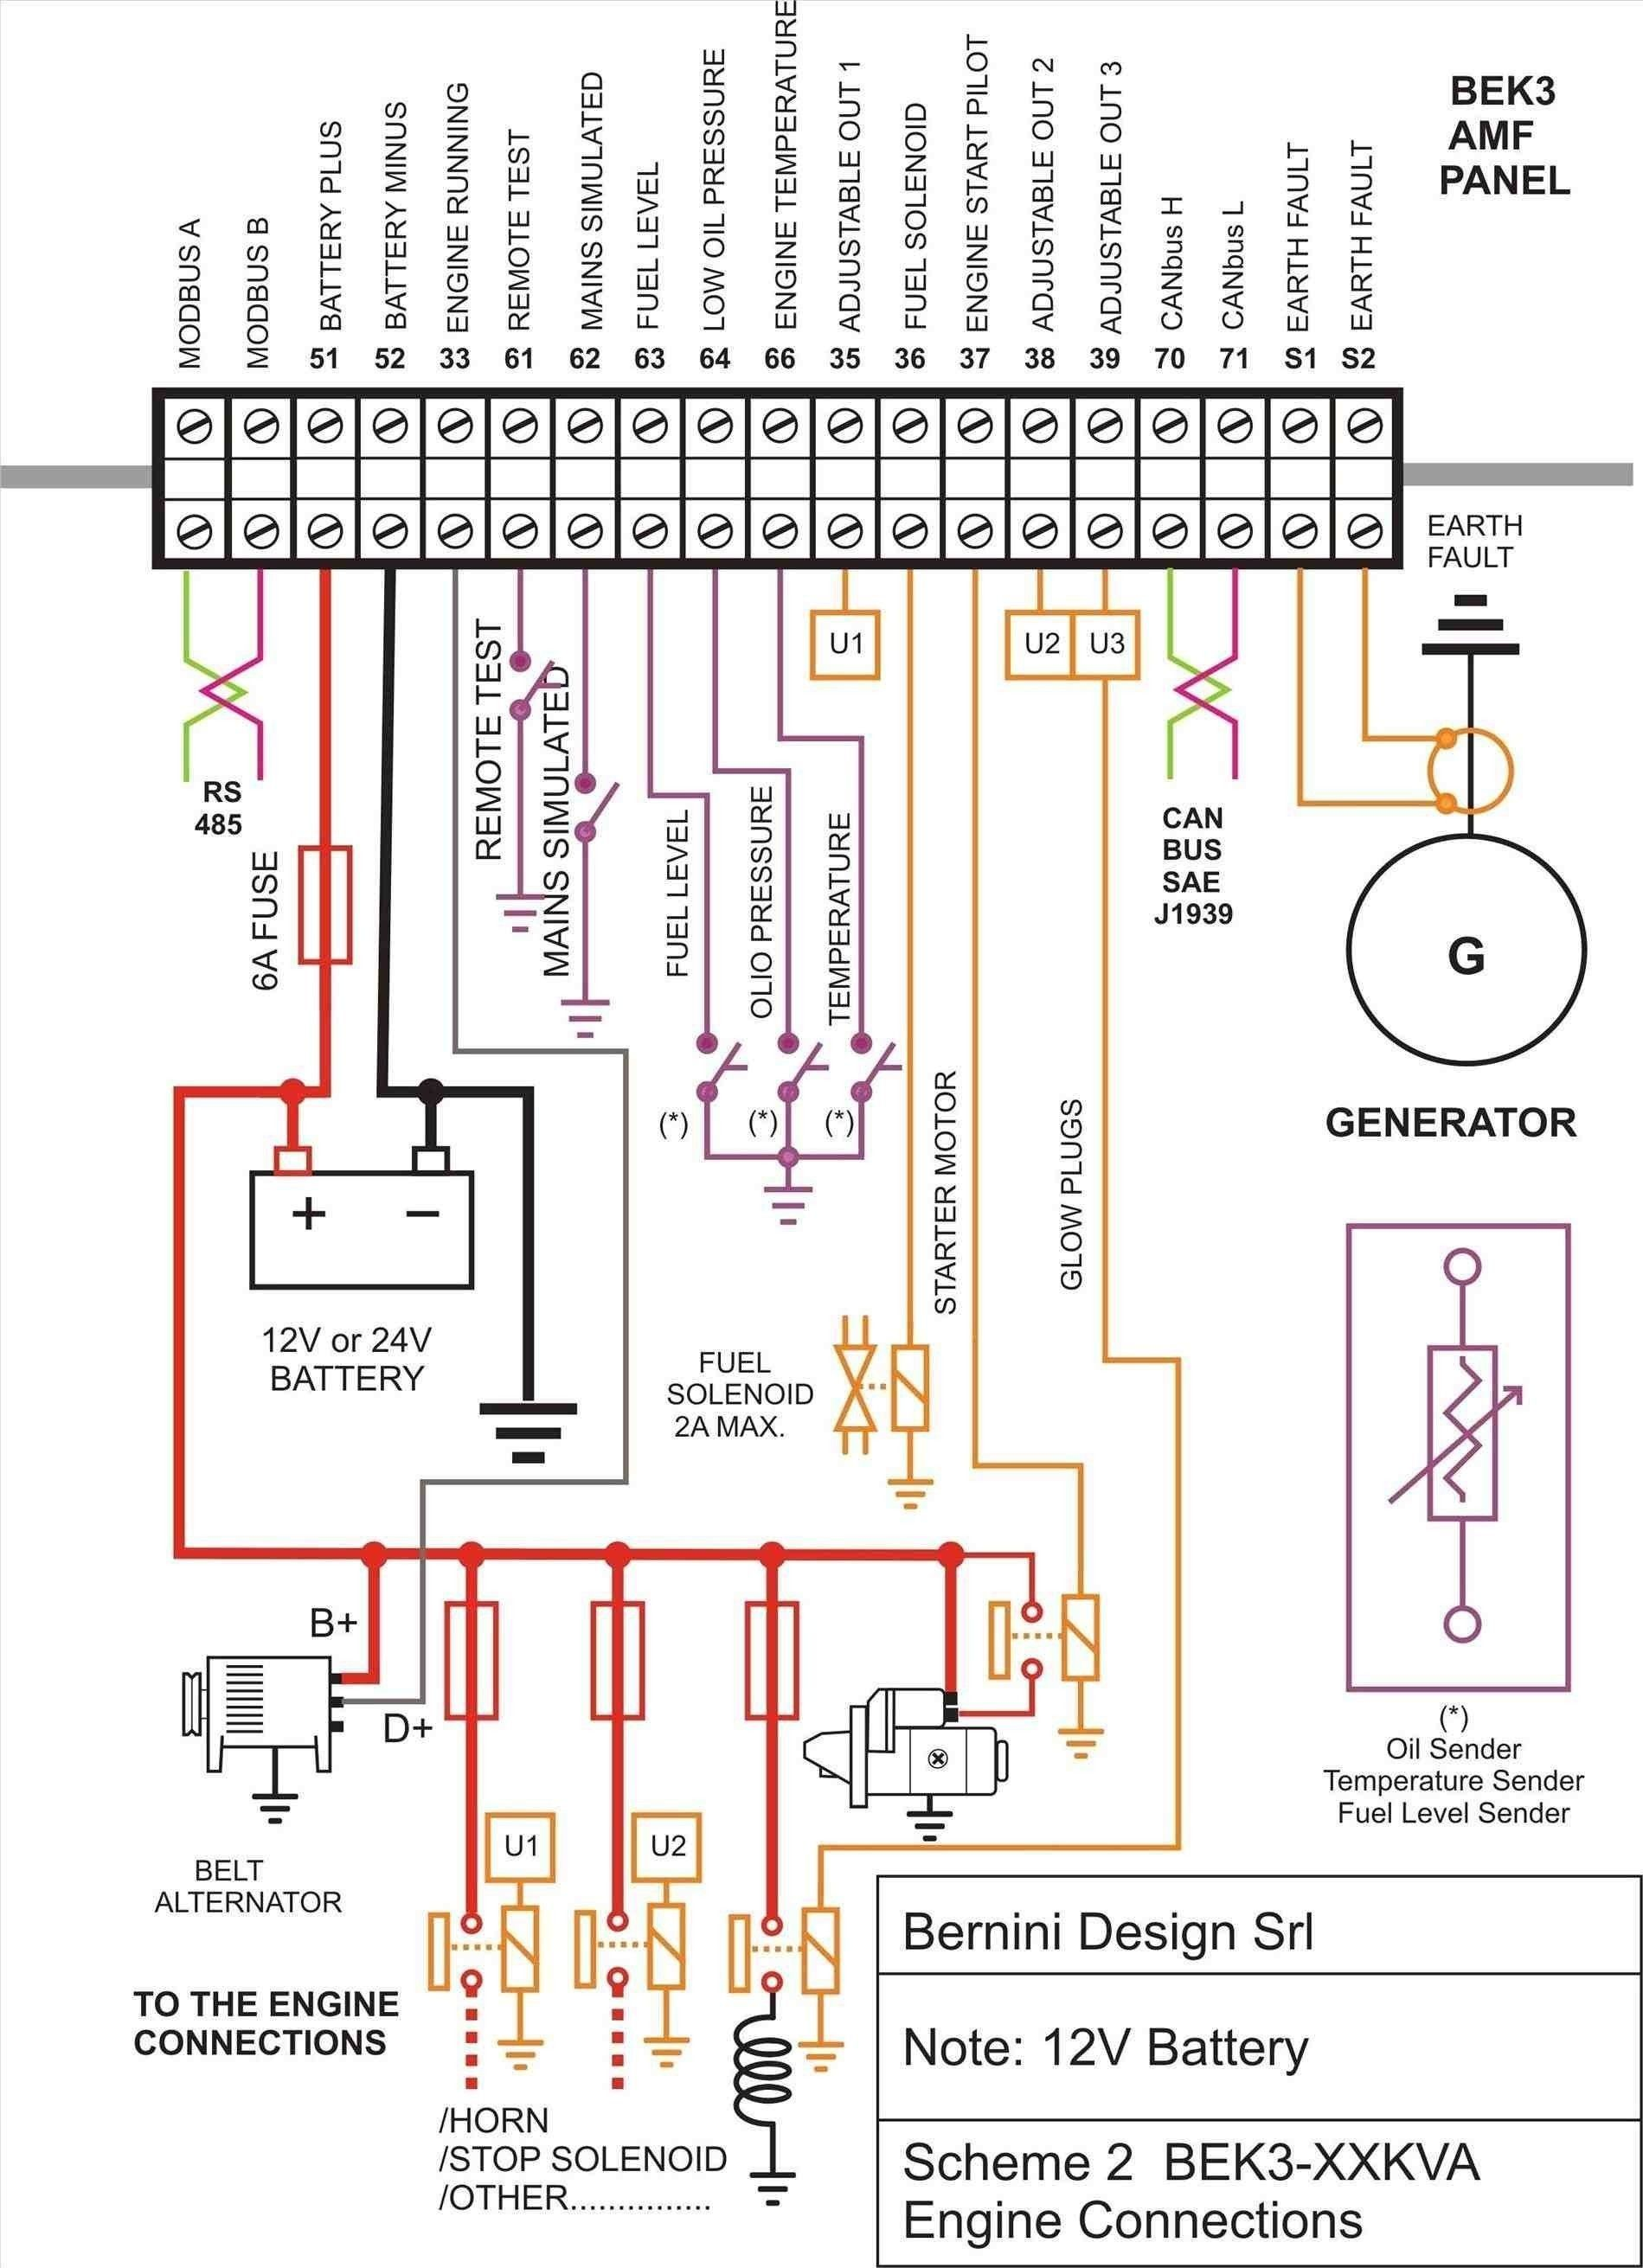 Awesome Wiring Diagram Of Door Access Control System #diagrams  #digramssample #diagramimag… | Electrical circuit diagram, Electrical wiring  diagram, Circuit diagramPinterest